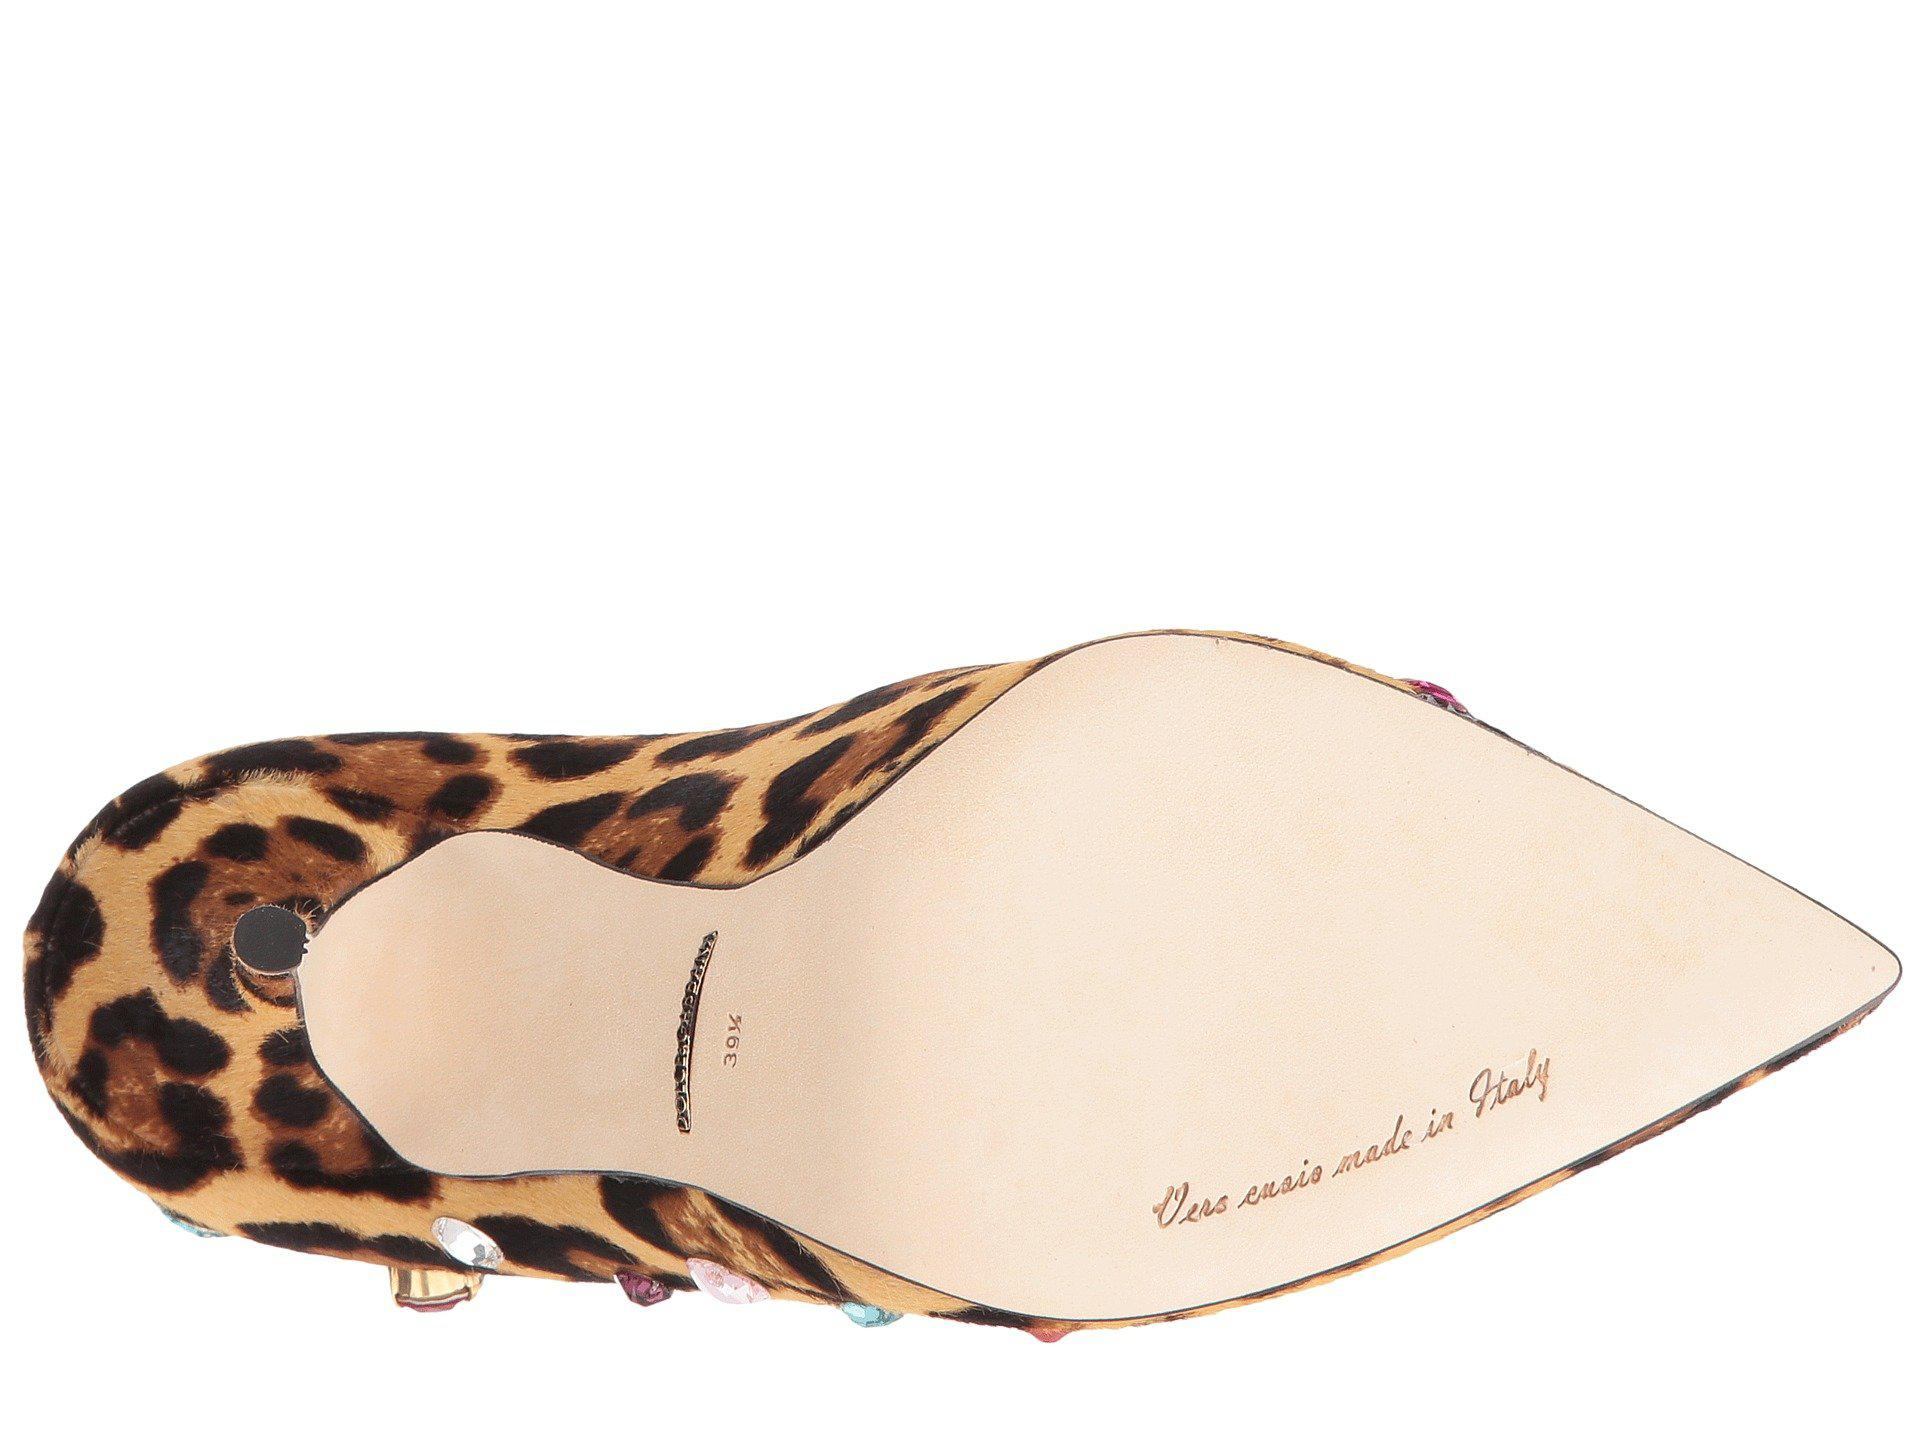 8a8f241eb08c Gallery. Previously sold at: 6PM, Zappos, Zappos Luxury · Women's Dolce  Gabbana Bellucci